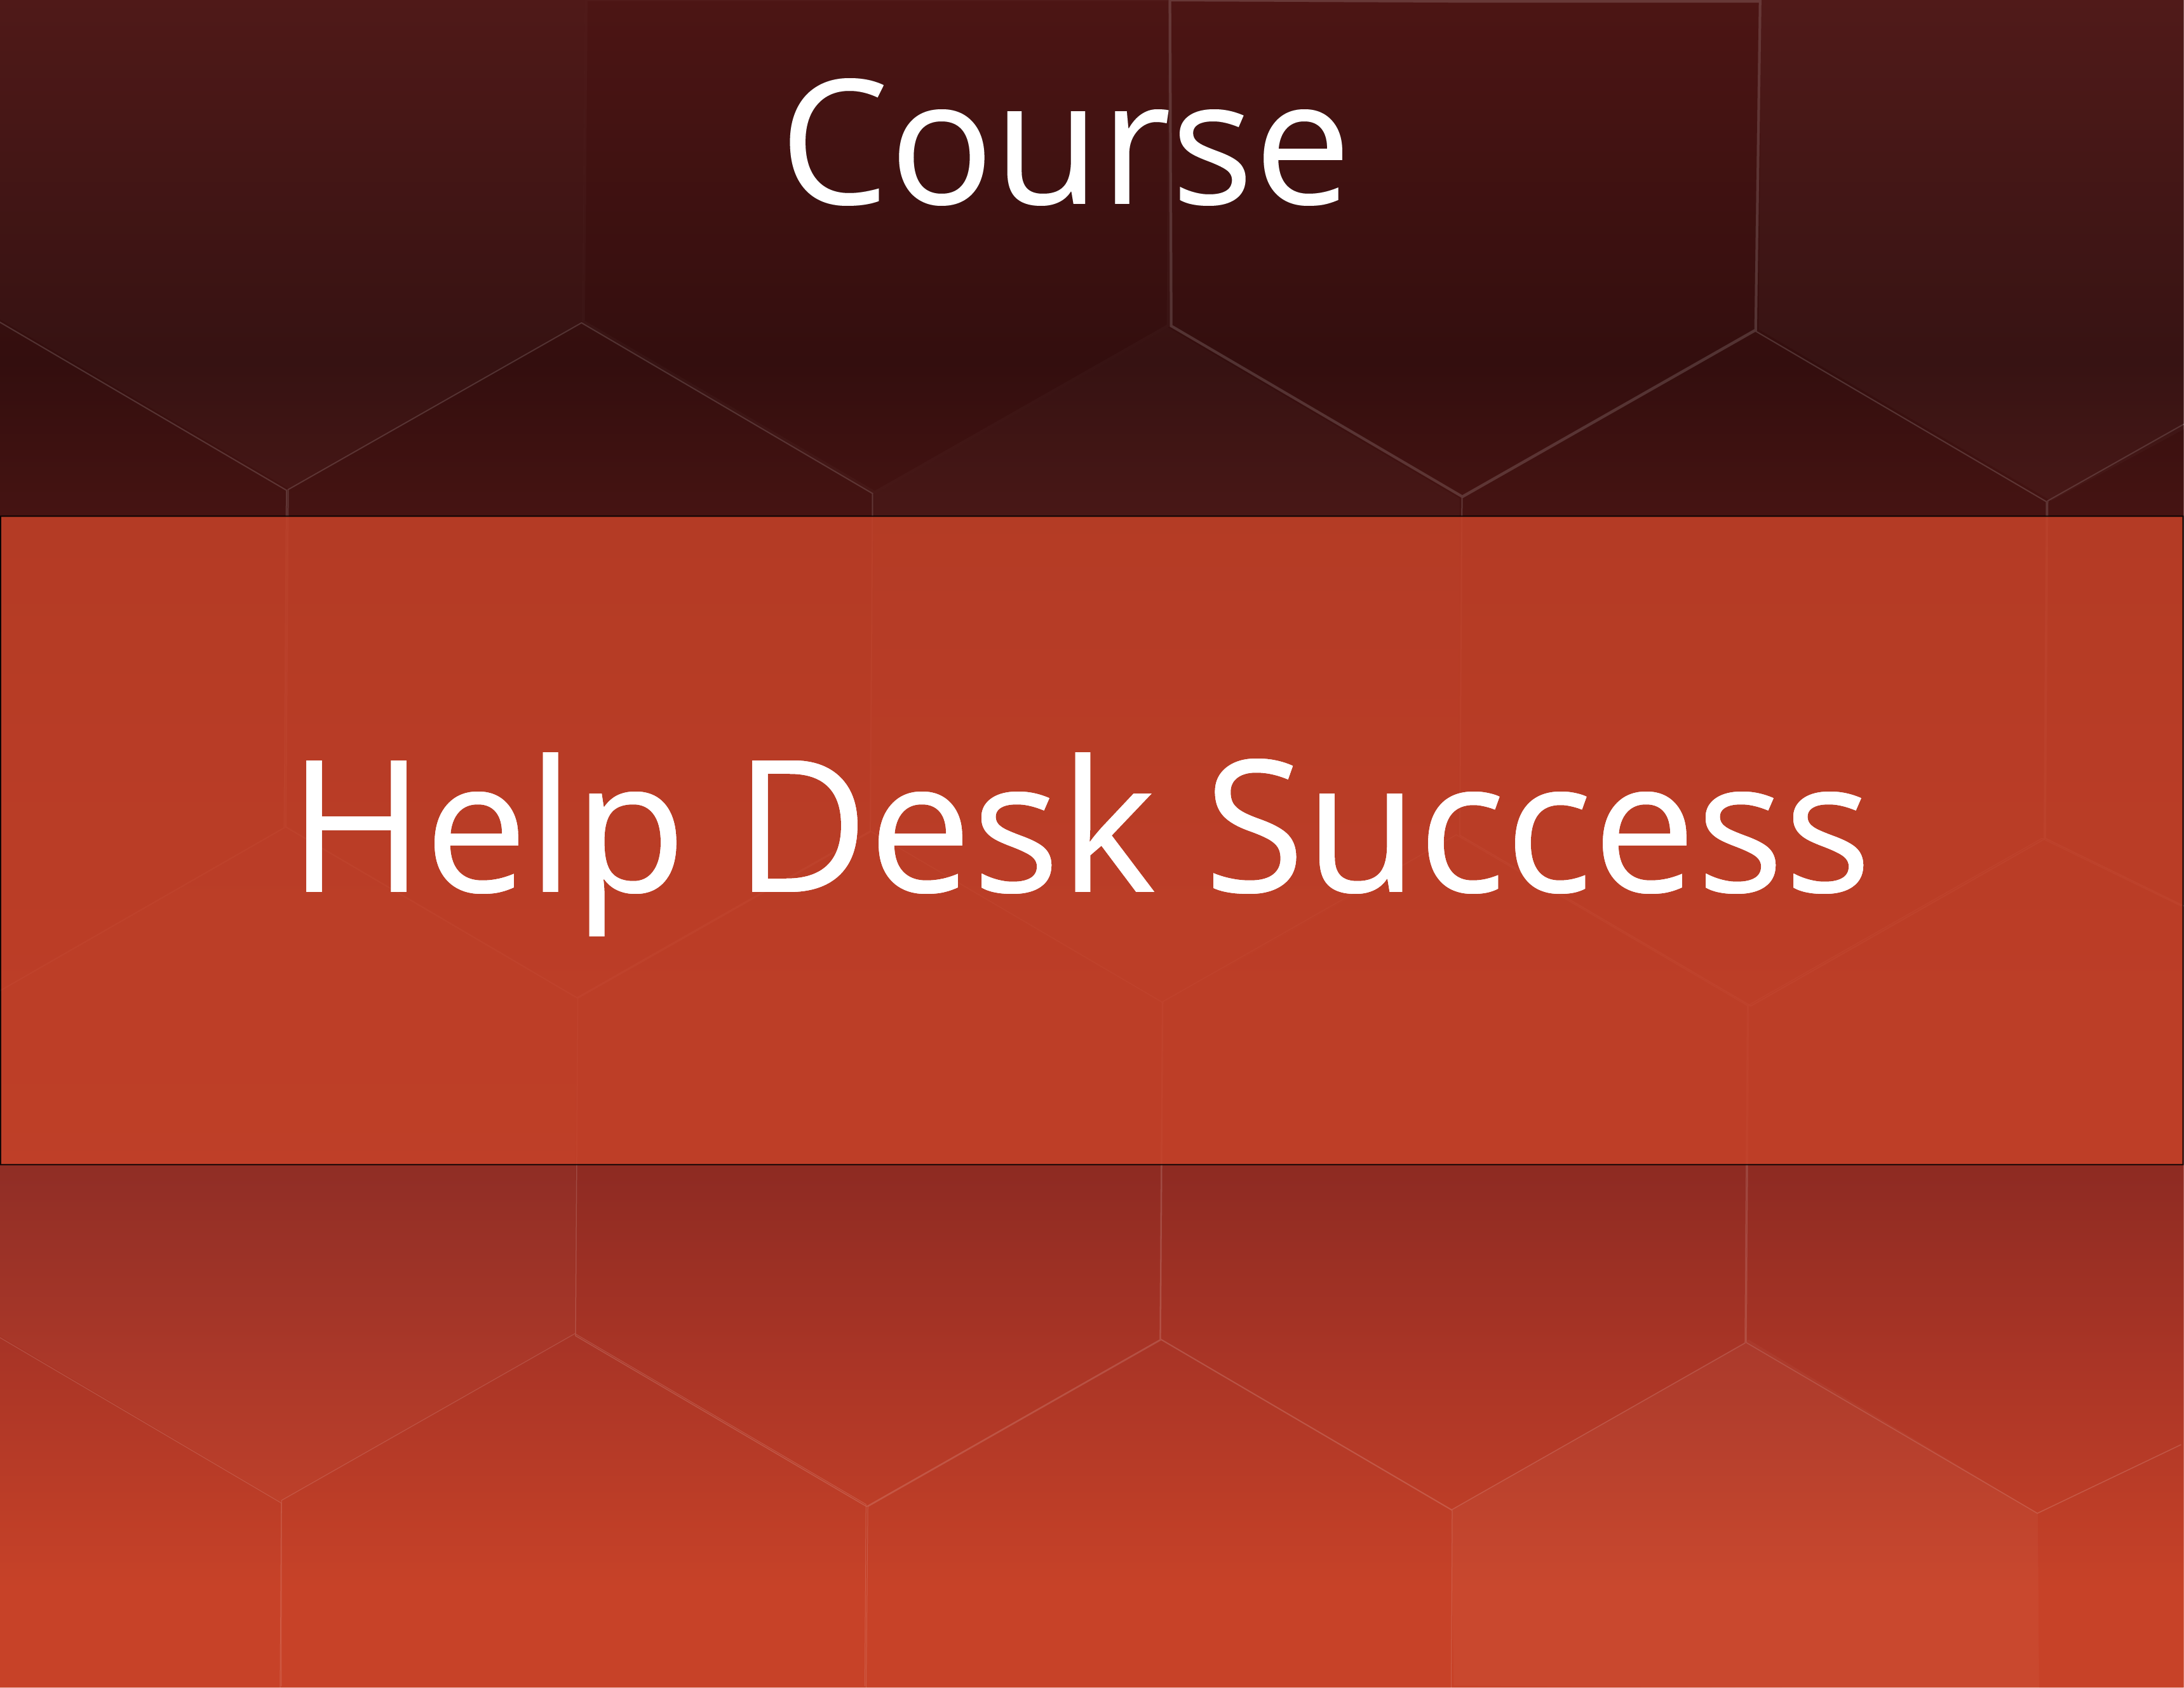 Help Desk Success